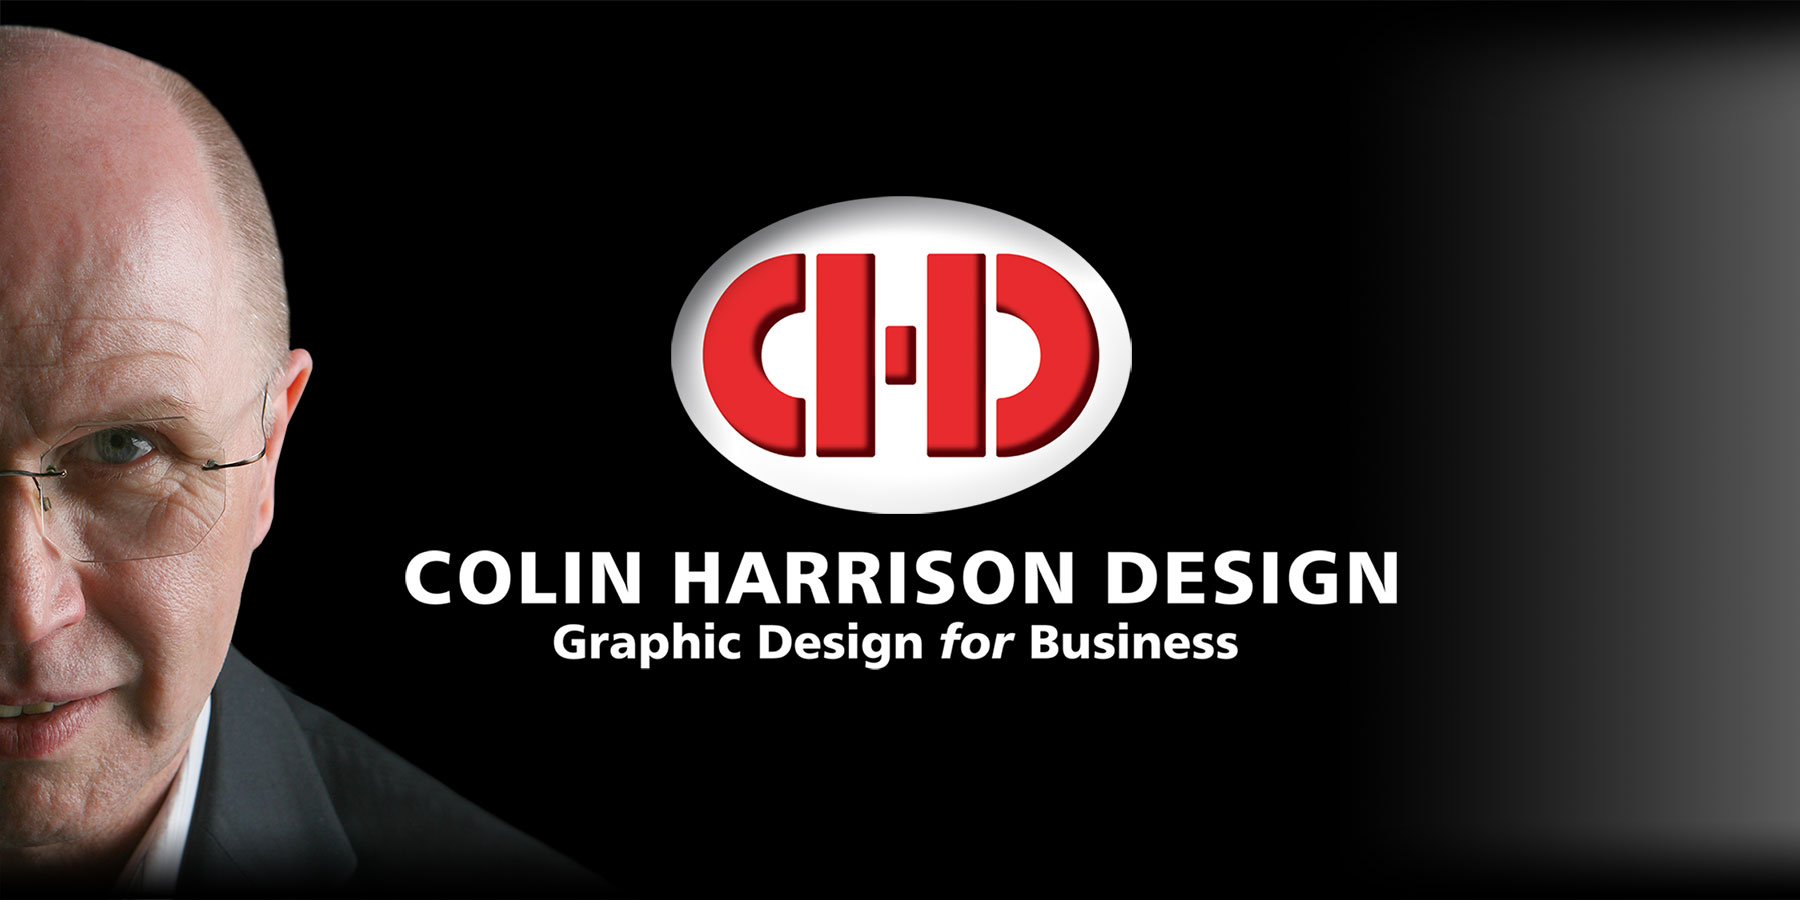 COLIN HARRISON DESIGN Graphic Design for Business